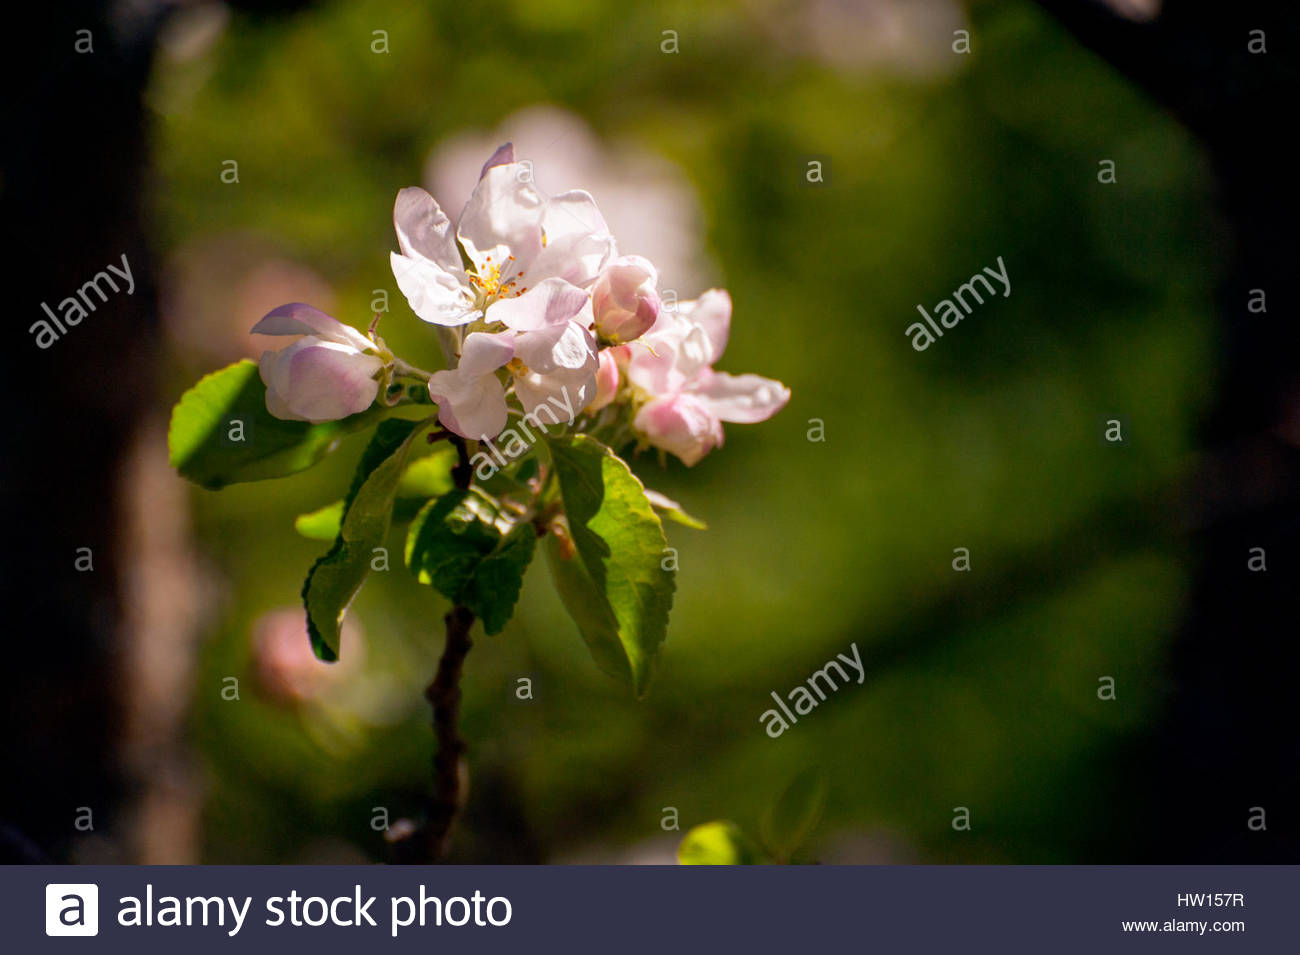 Romantic pink and white apple-blossom in Spring. - Stock Image